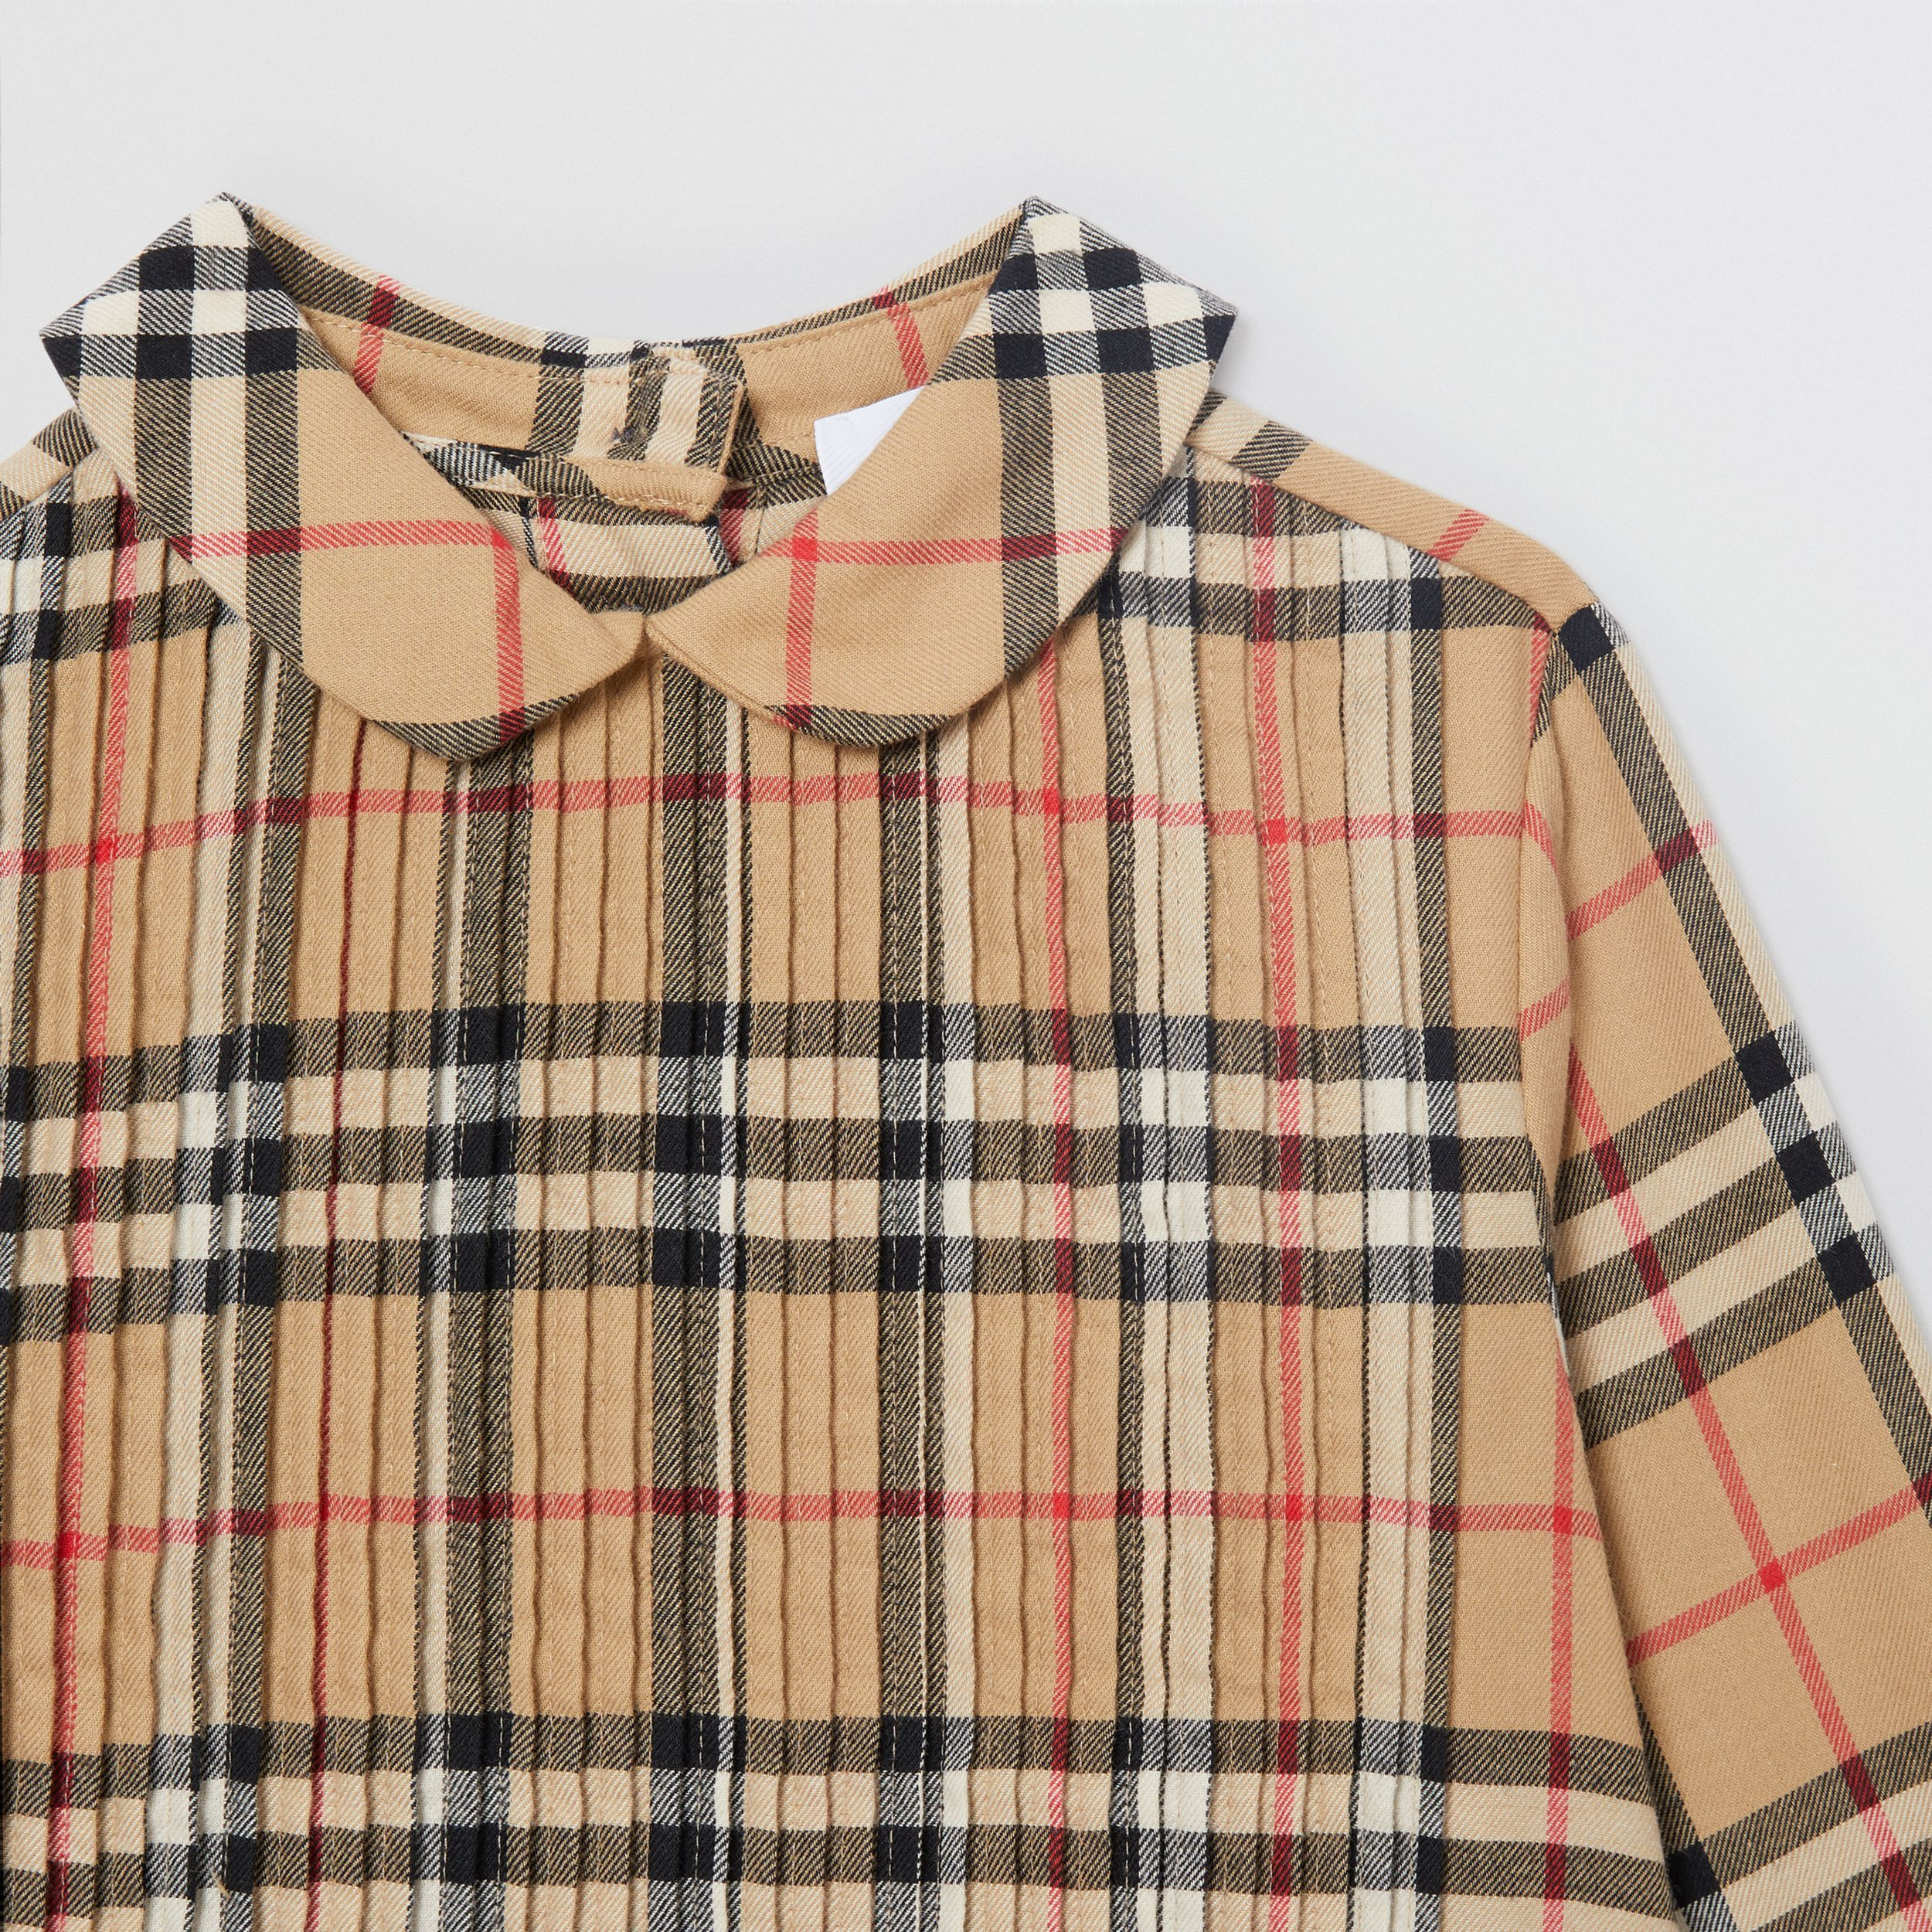 Pintuck Detail Vintage Check Cotton Twill Blouse in Archive Beige | Burberry Singapore - 4